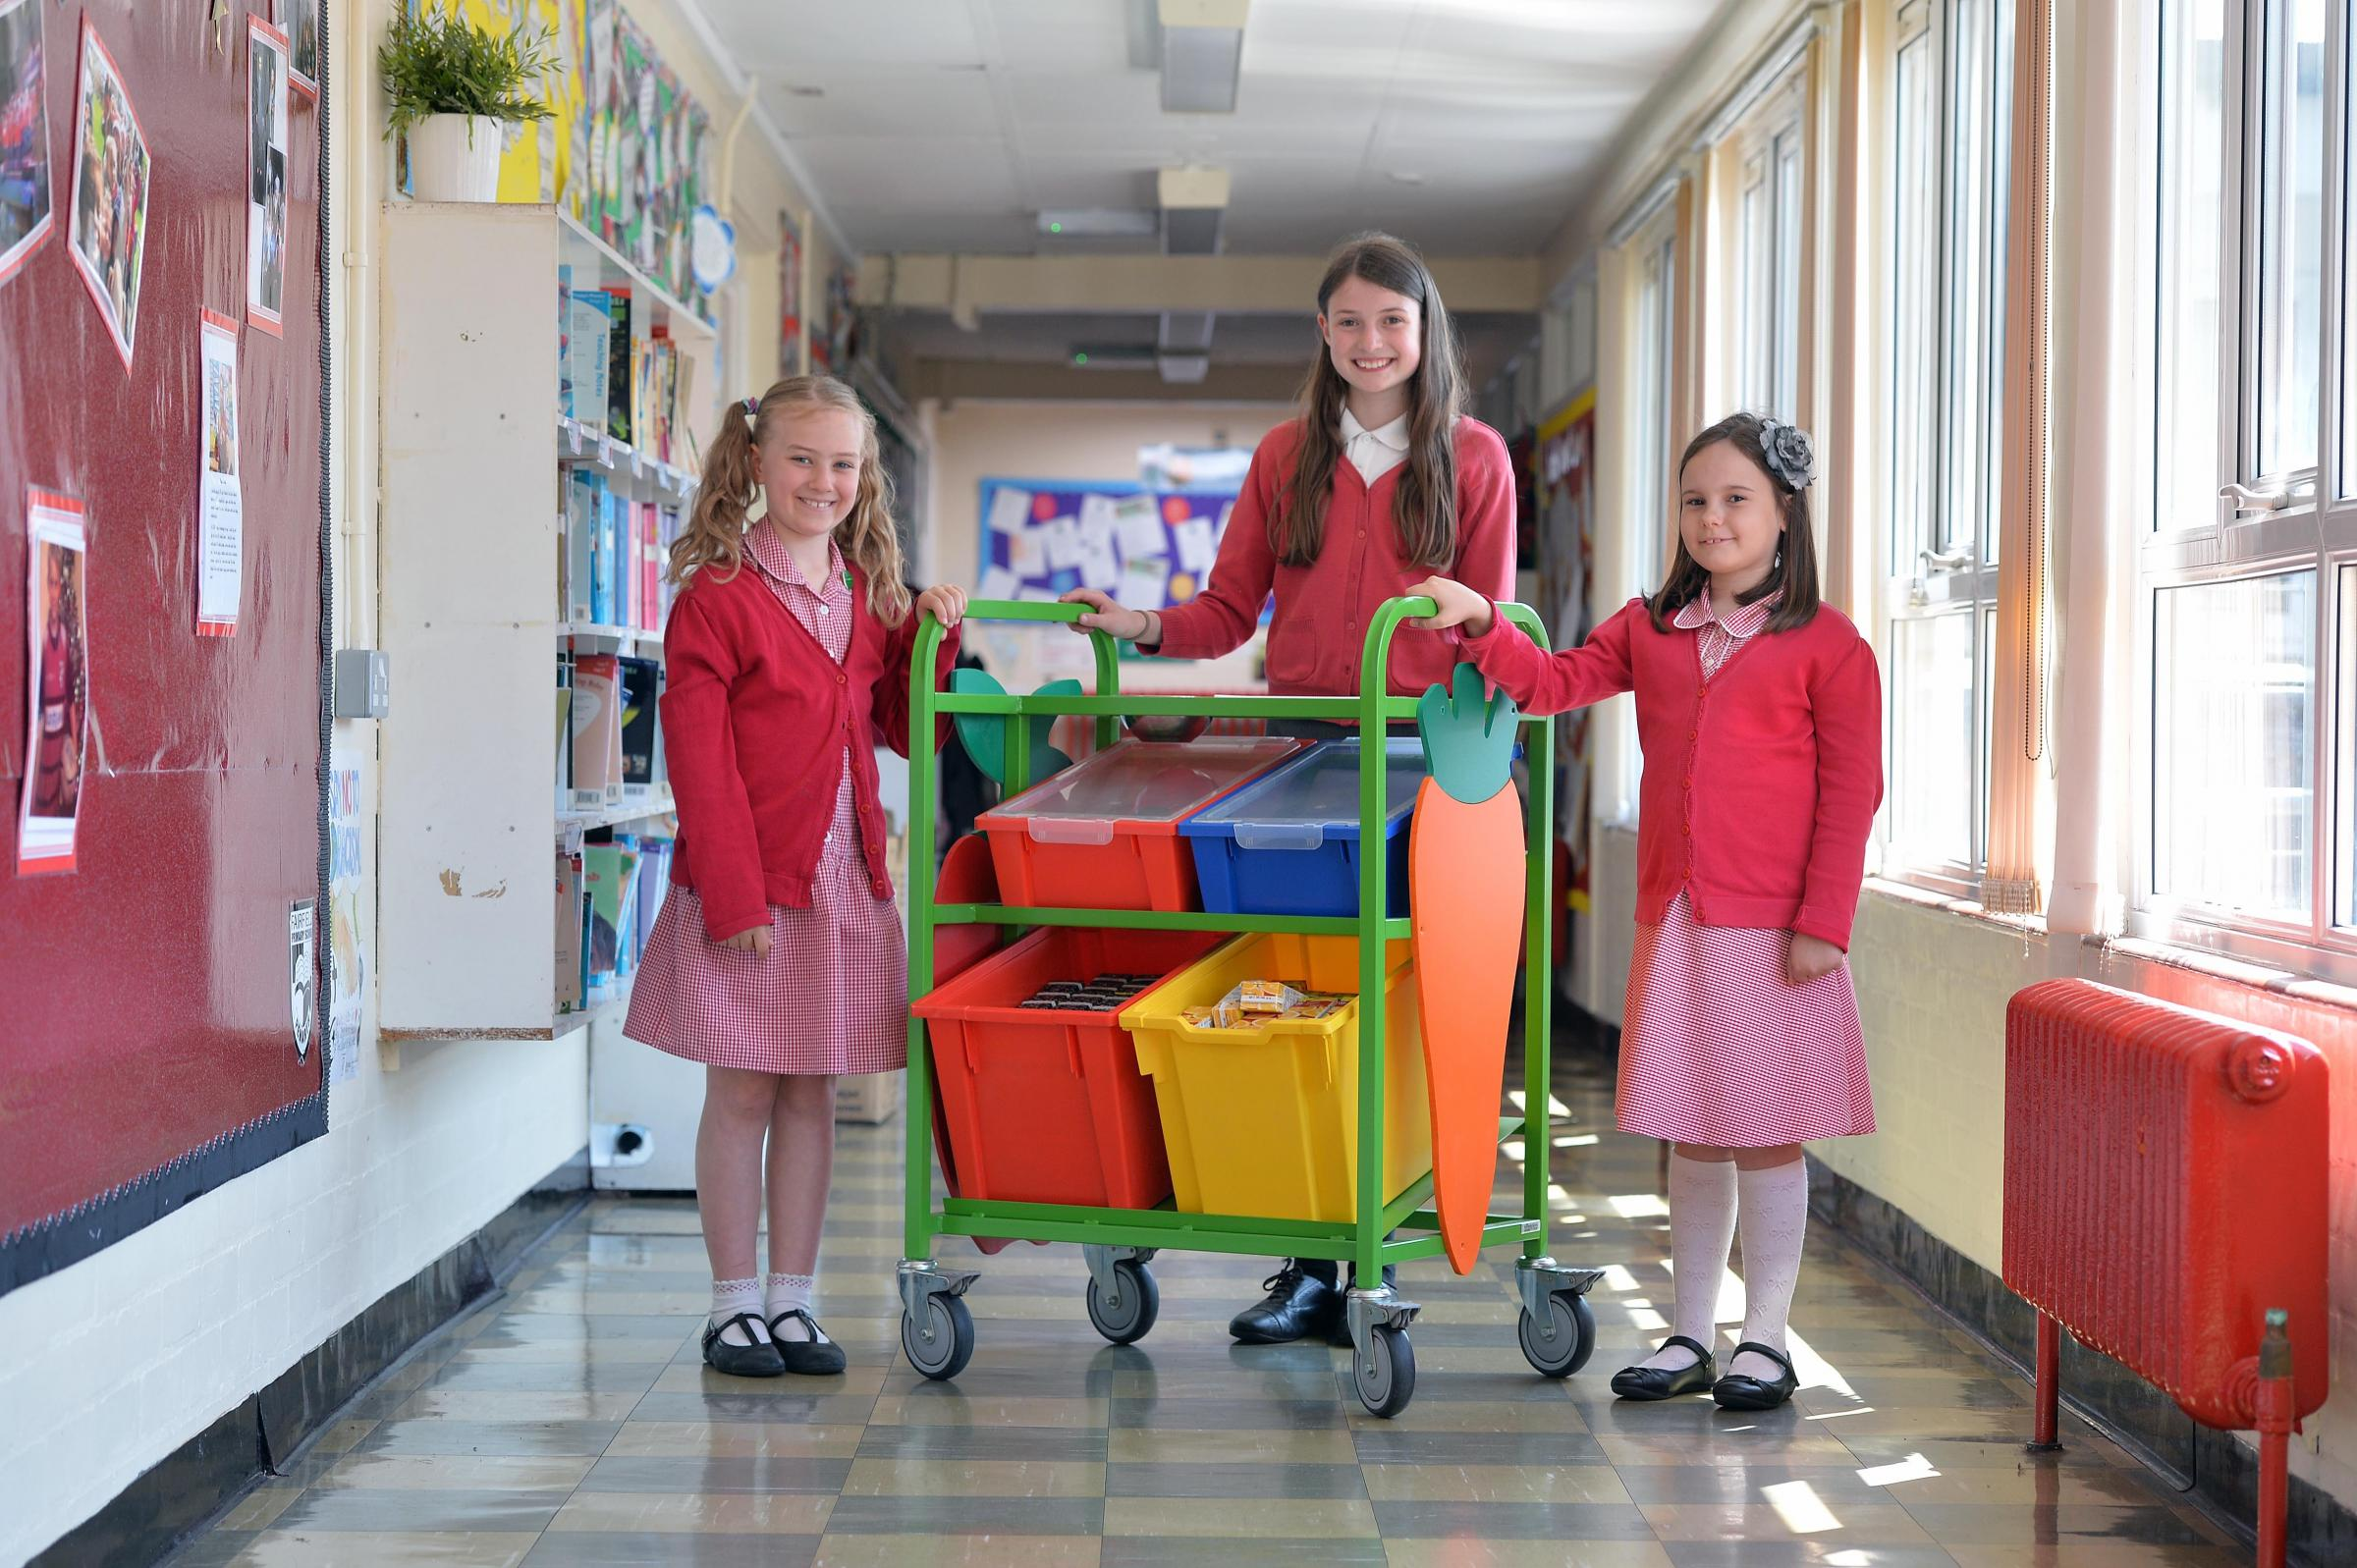 Fairfield Primary pupils Libby Herbert, Bethan Drake and Millie Hughes